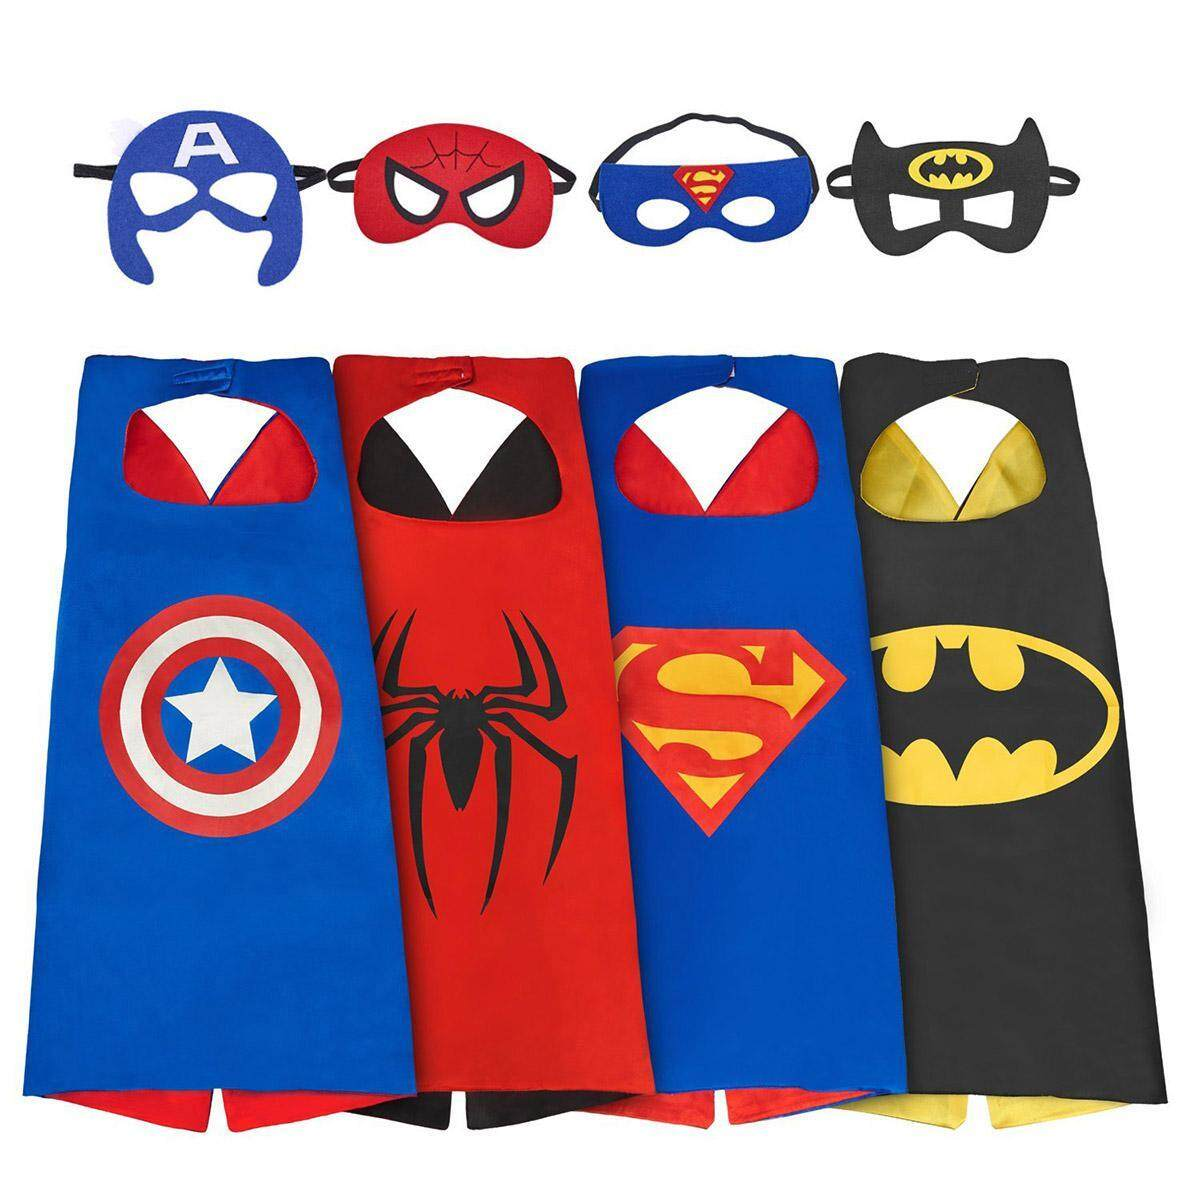 Superhero Costume Cos-Play For Boys, 4 Sets Superhero Dress Up Costumes For Kids, Capes And Mask Costumes (3-8 Boy Costumes),halloween, Christmas, Party By Kobwa Direct.